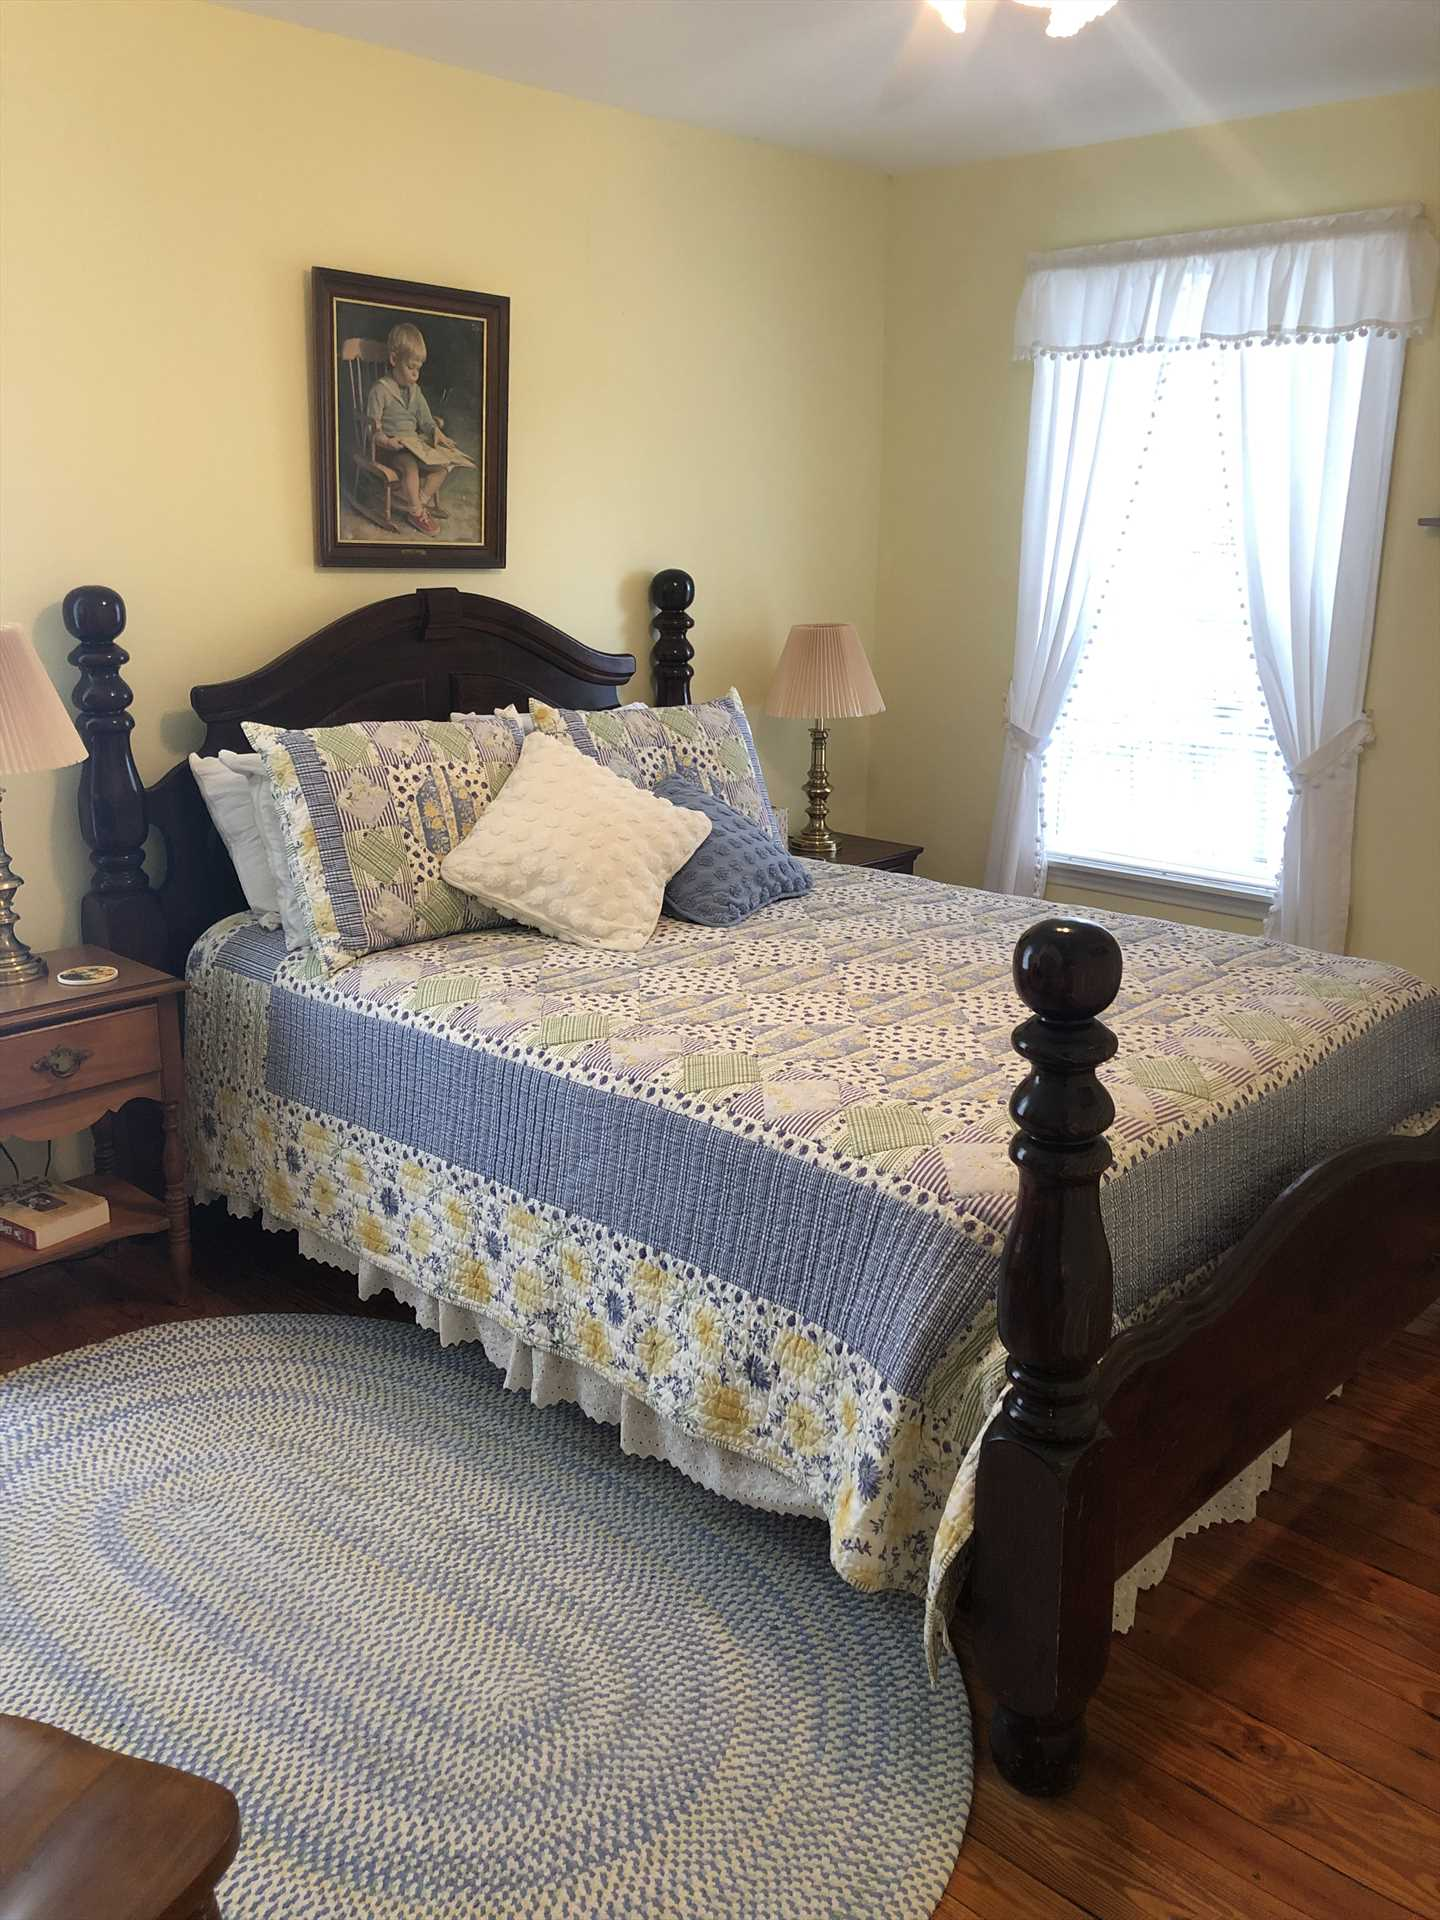 A big and comfy queen-sized bed is the centerpiece of the master bedroom, and all bed and bath linens are provided.